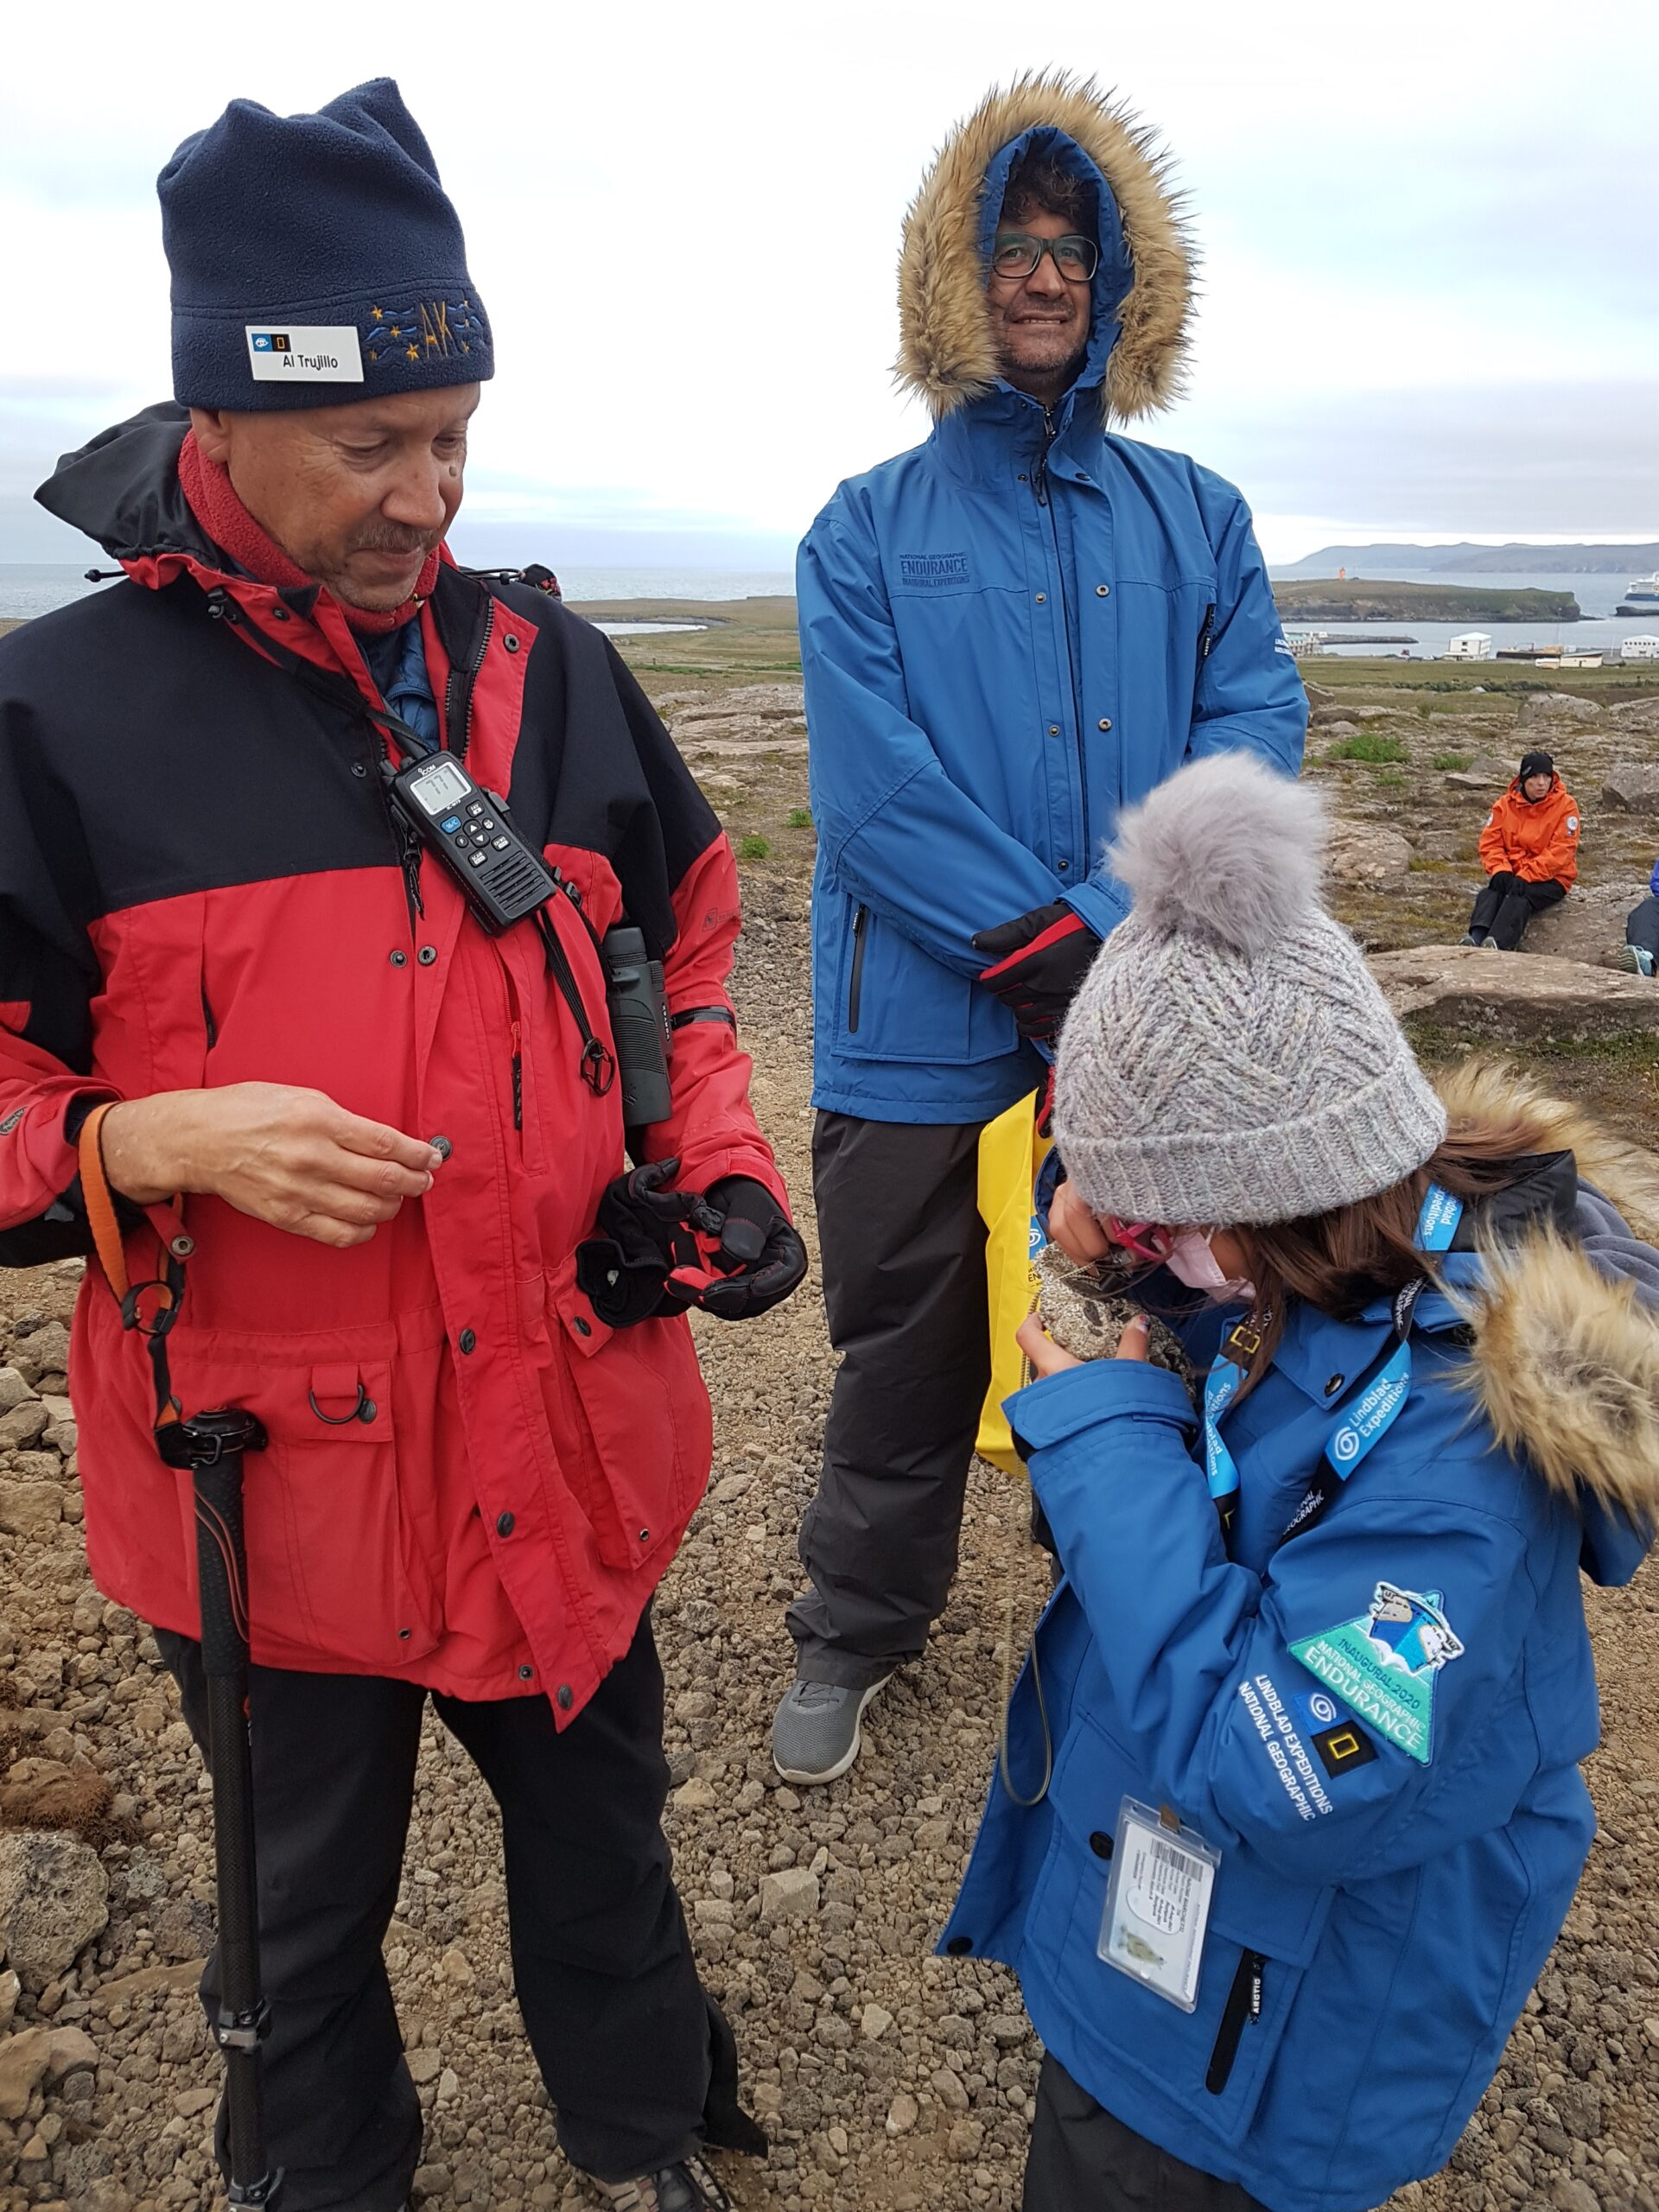 Lindblad cruise: examining rocks with the ship's geologist.